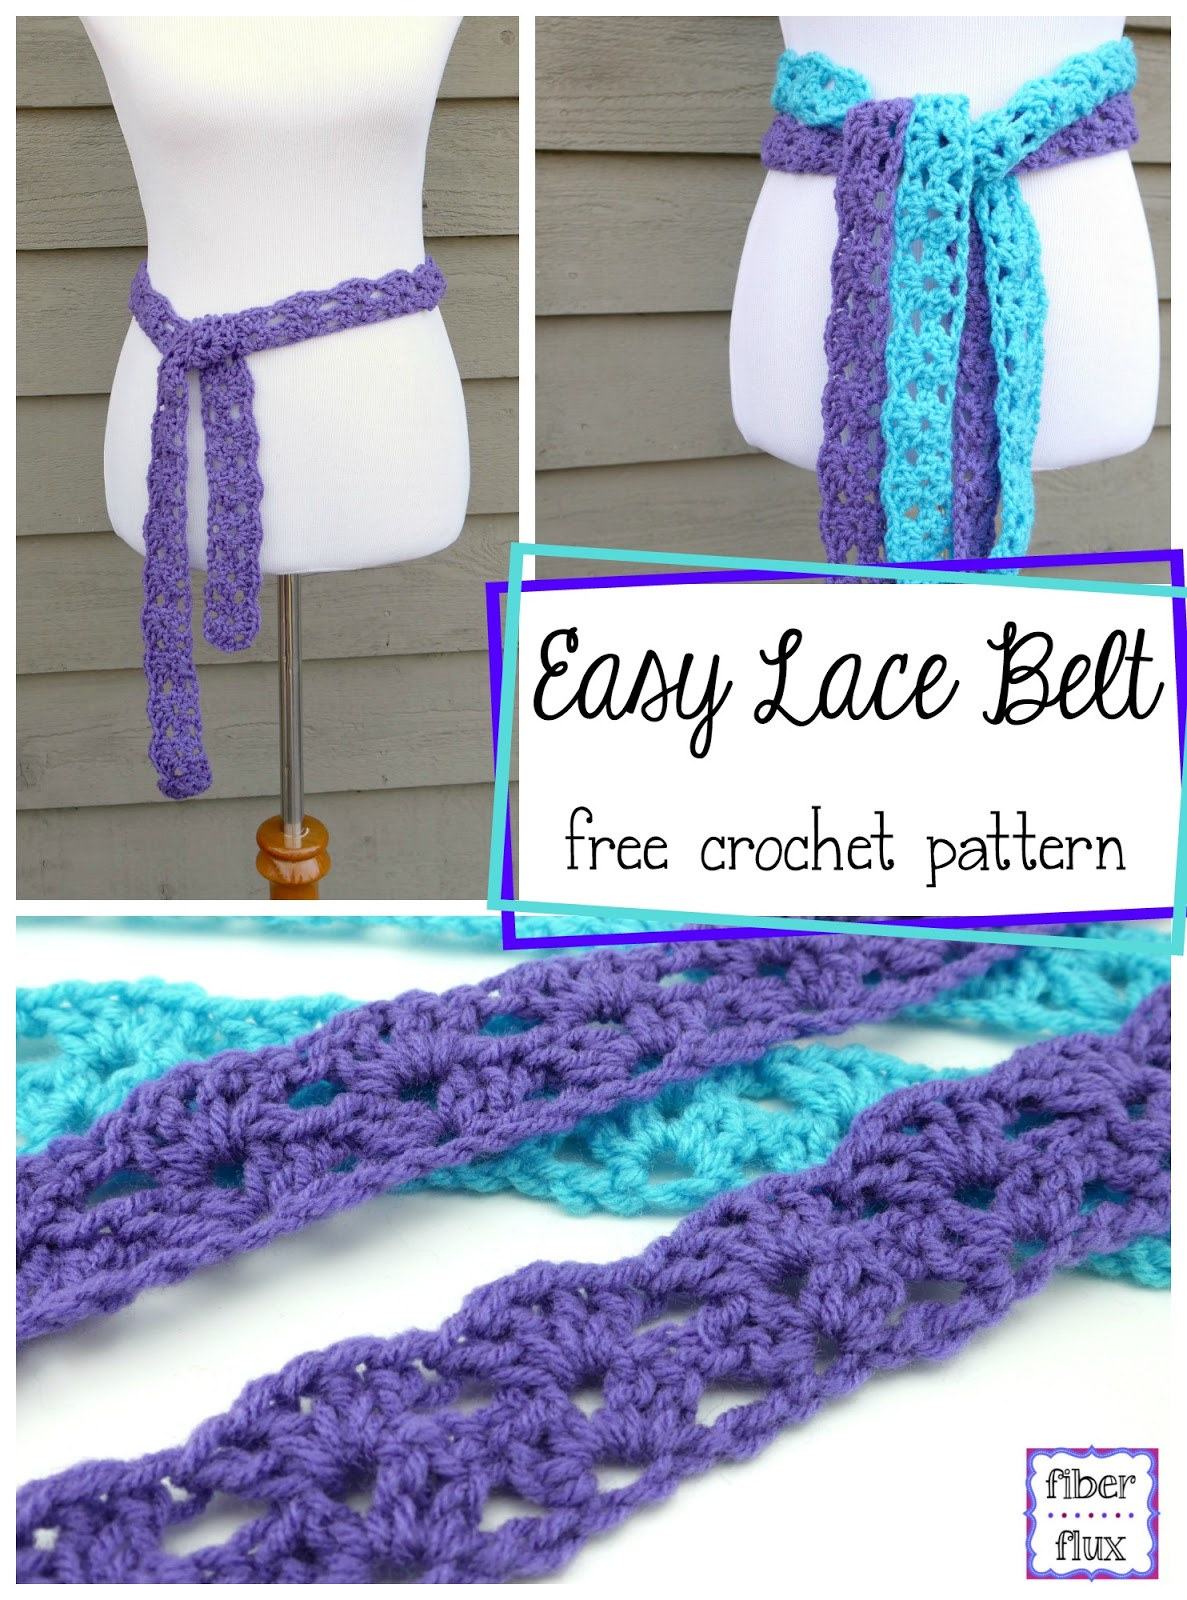 Crochet Belt Pattern Free : Fiber Flux: Free Crochet Pattern...Easy Lace Belt!